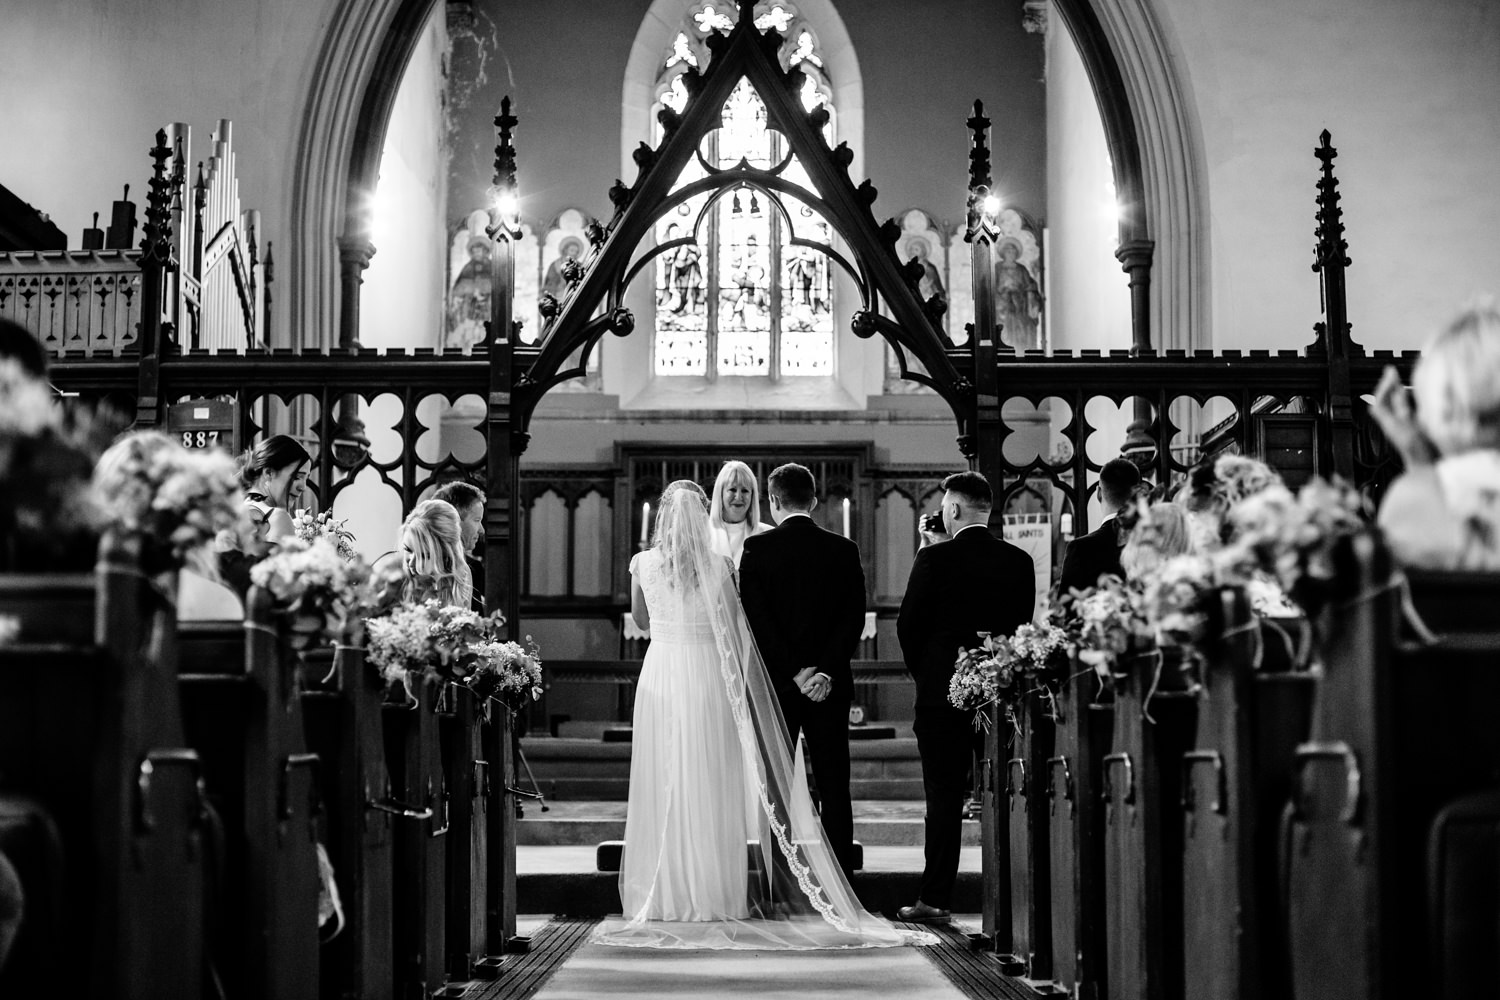 Katie-Luke-Huddersfield-wedding-photographer-Katie-Luke026.jpg